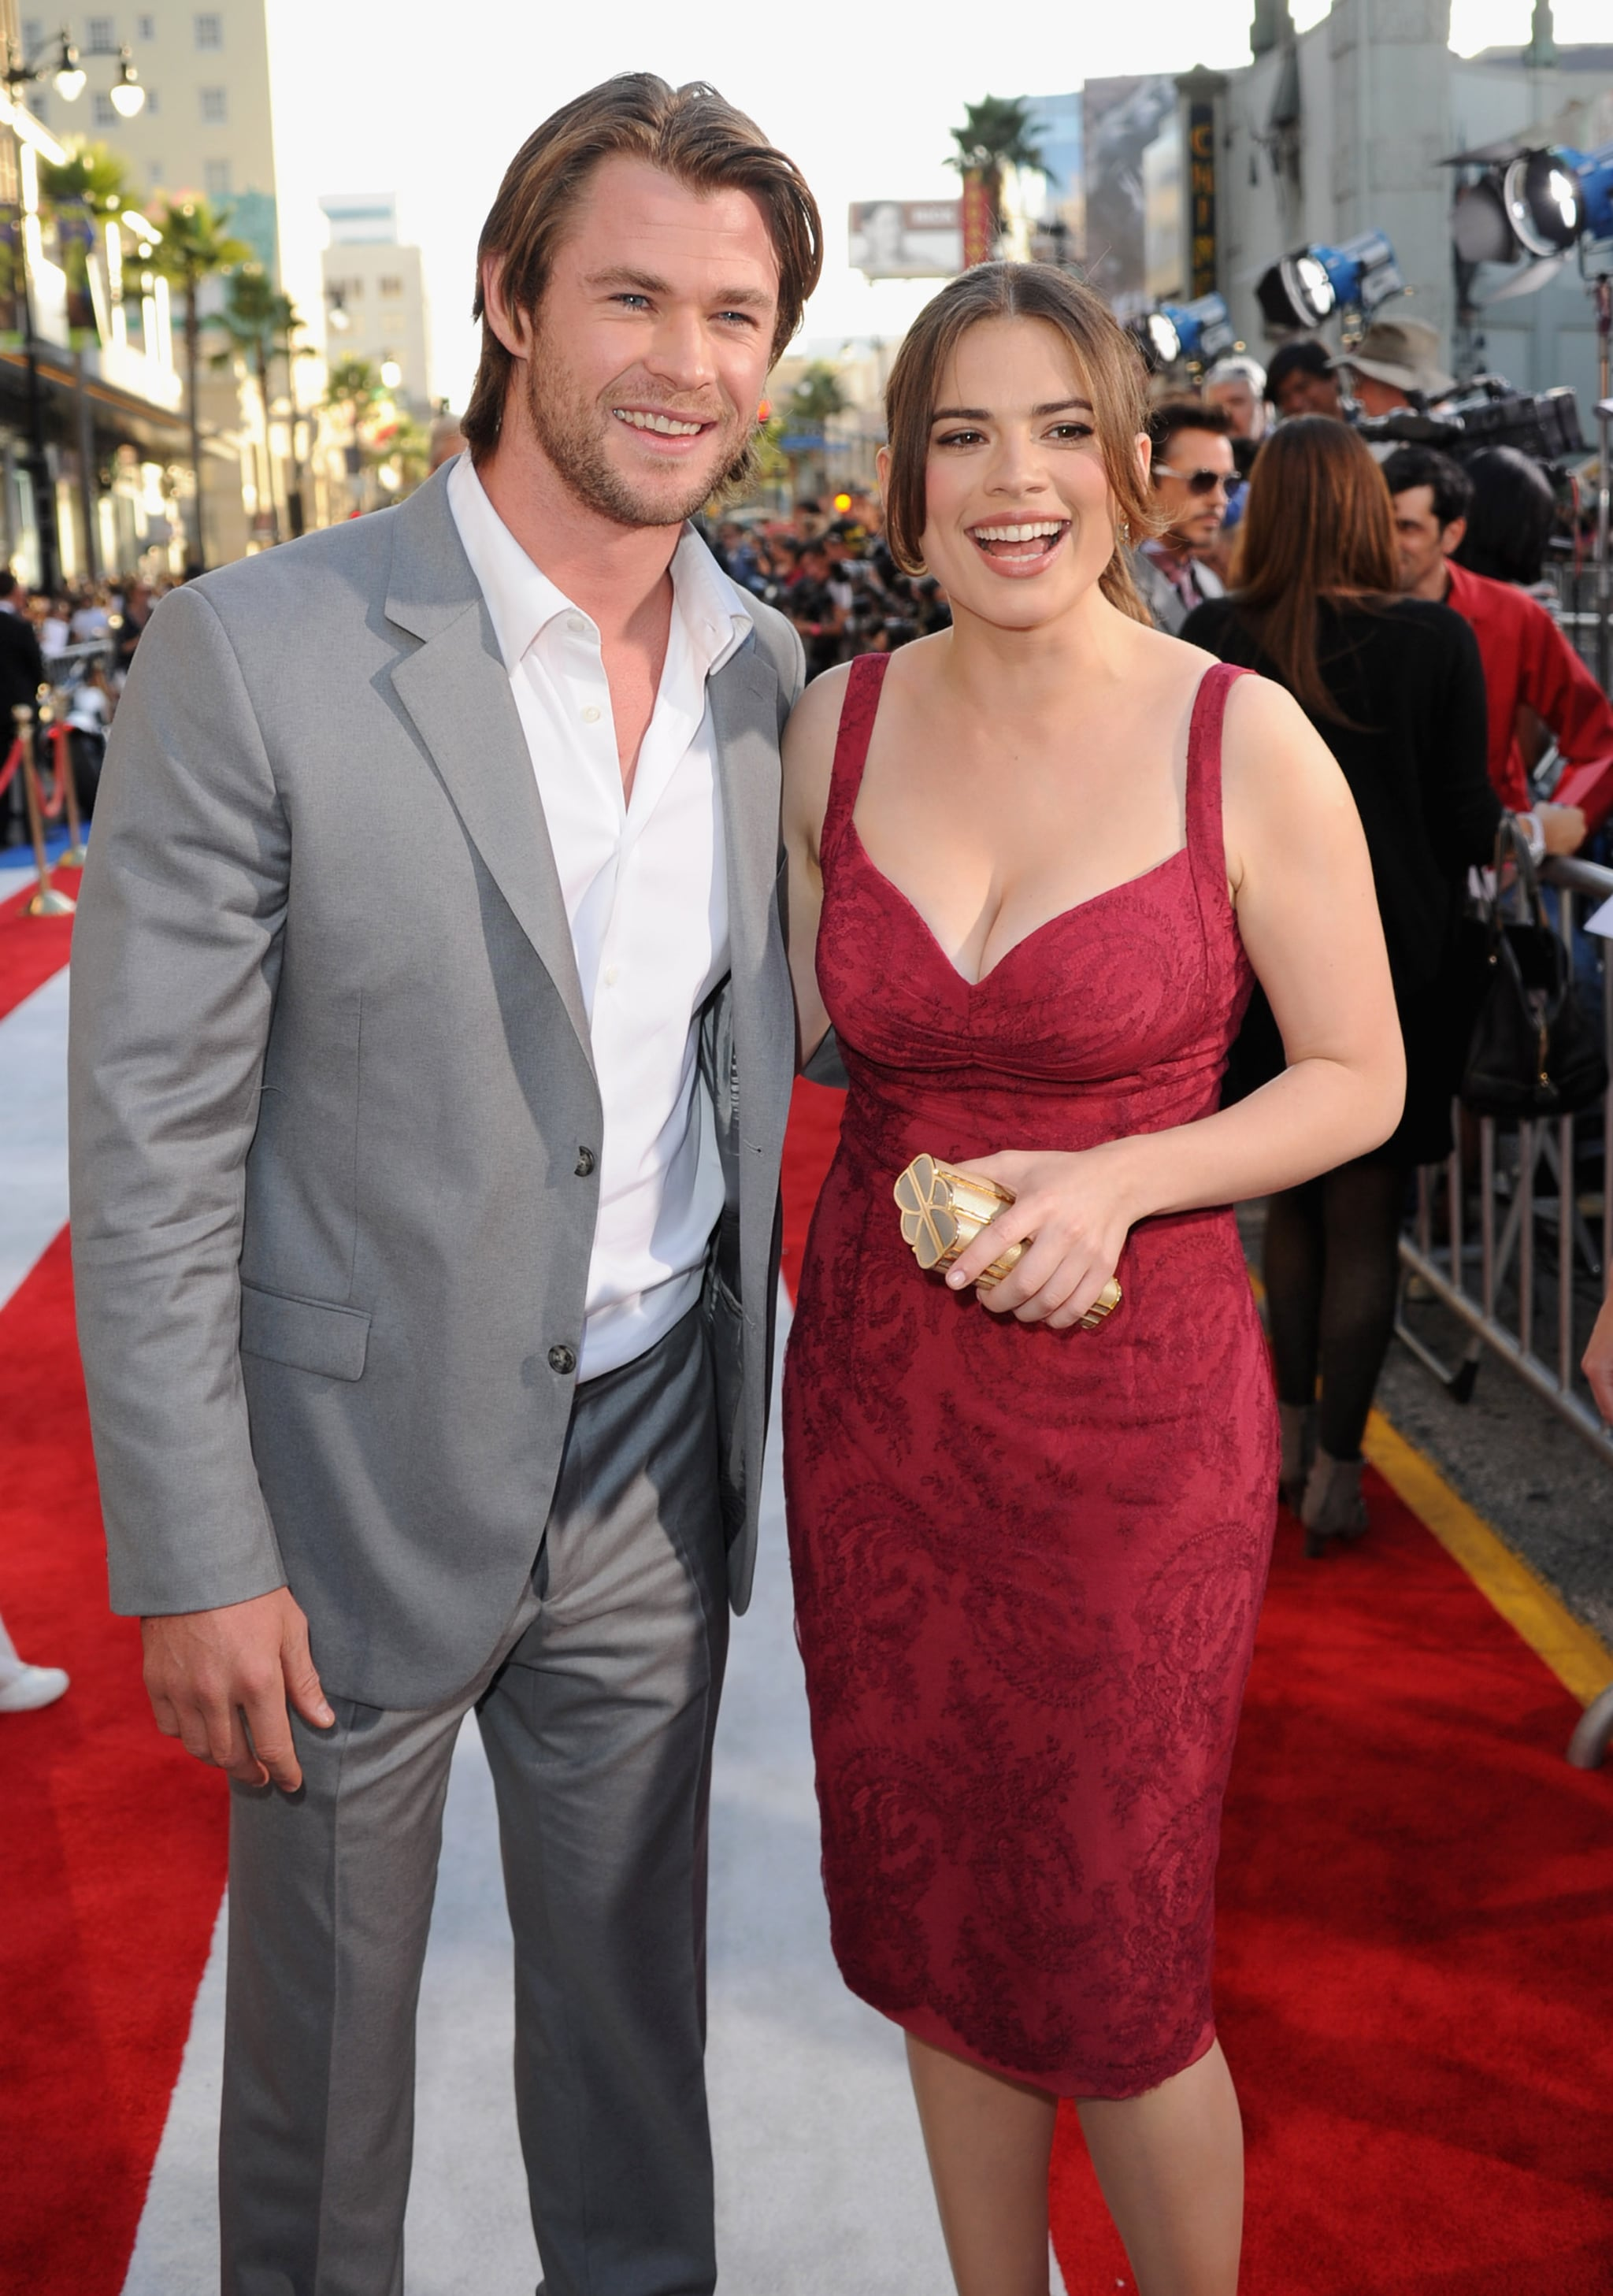 Chris Hemsworth and Hayley Atwell